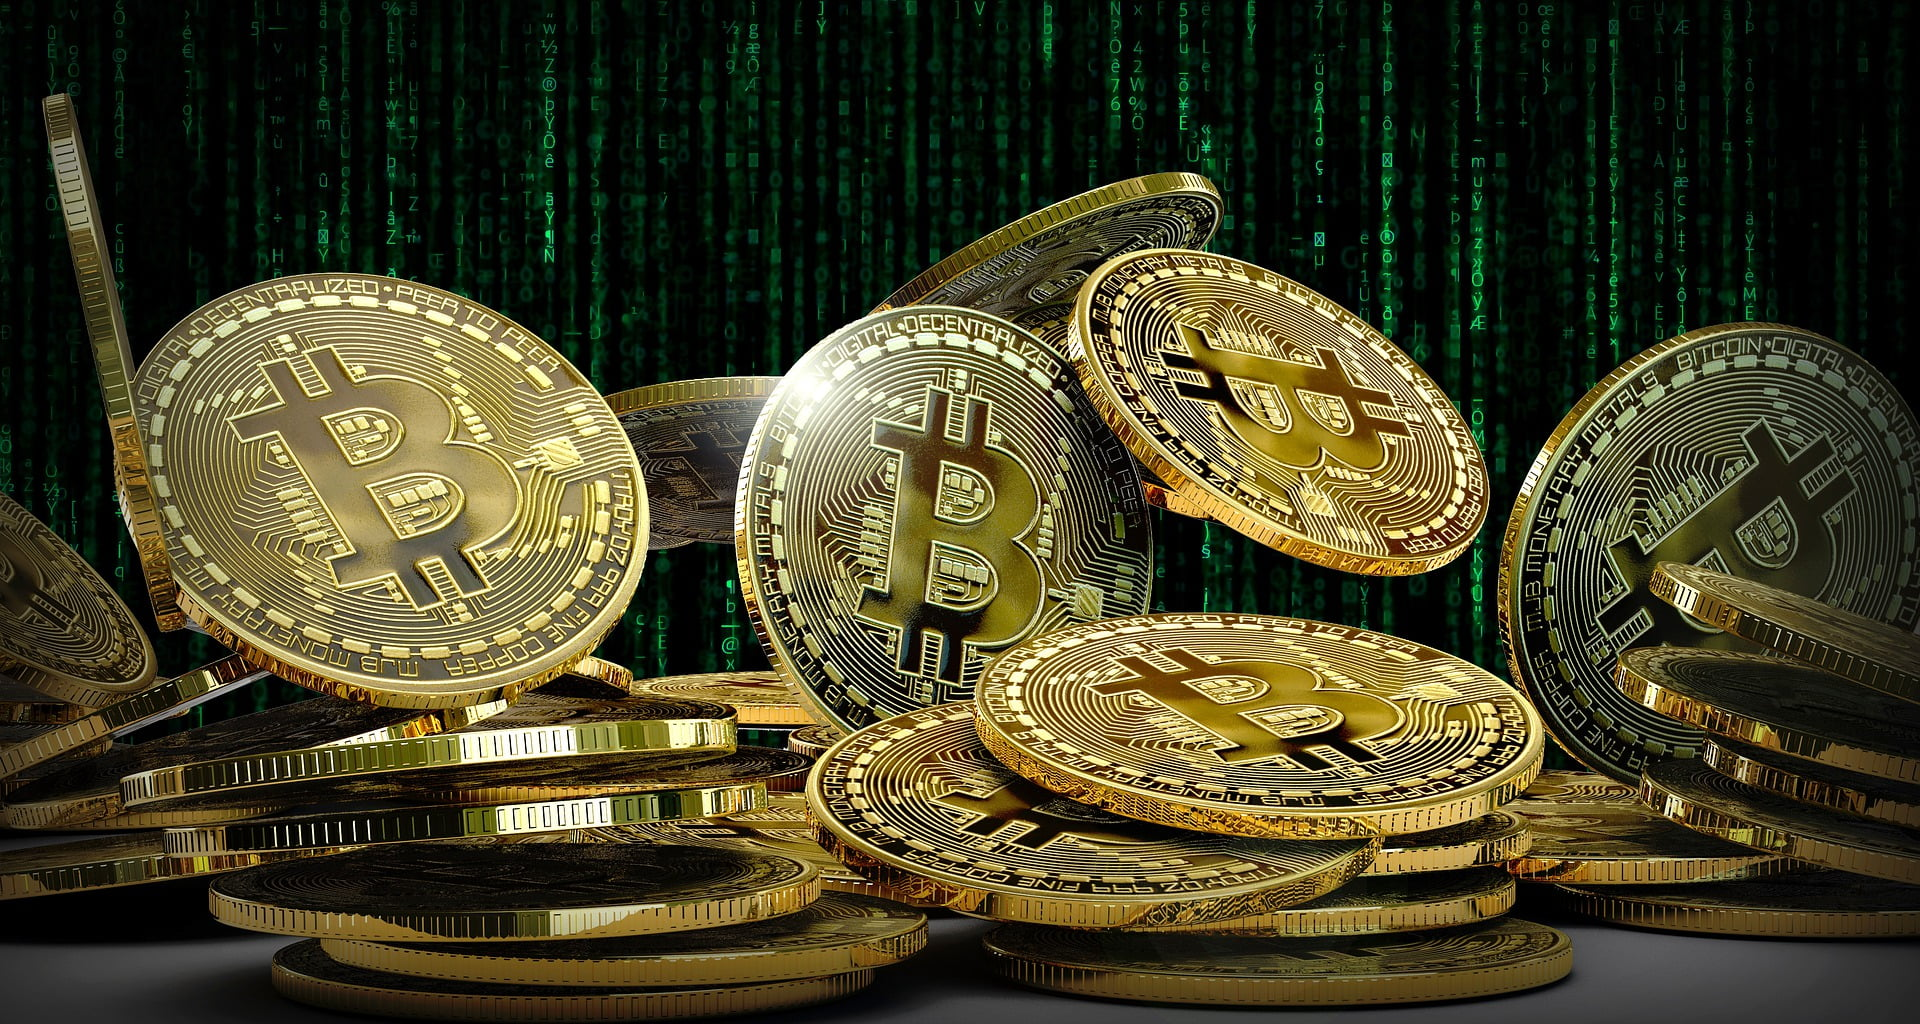 Crypto Exchanges Native Tokens May Leave Bitcoin Behind